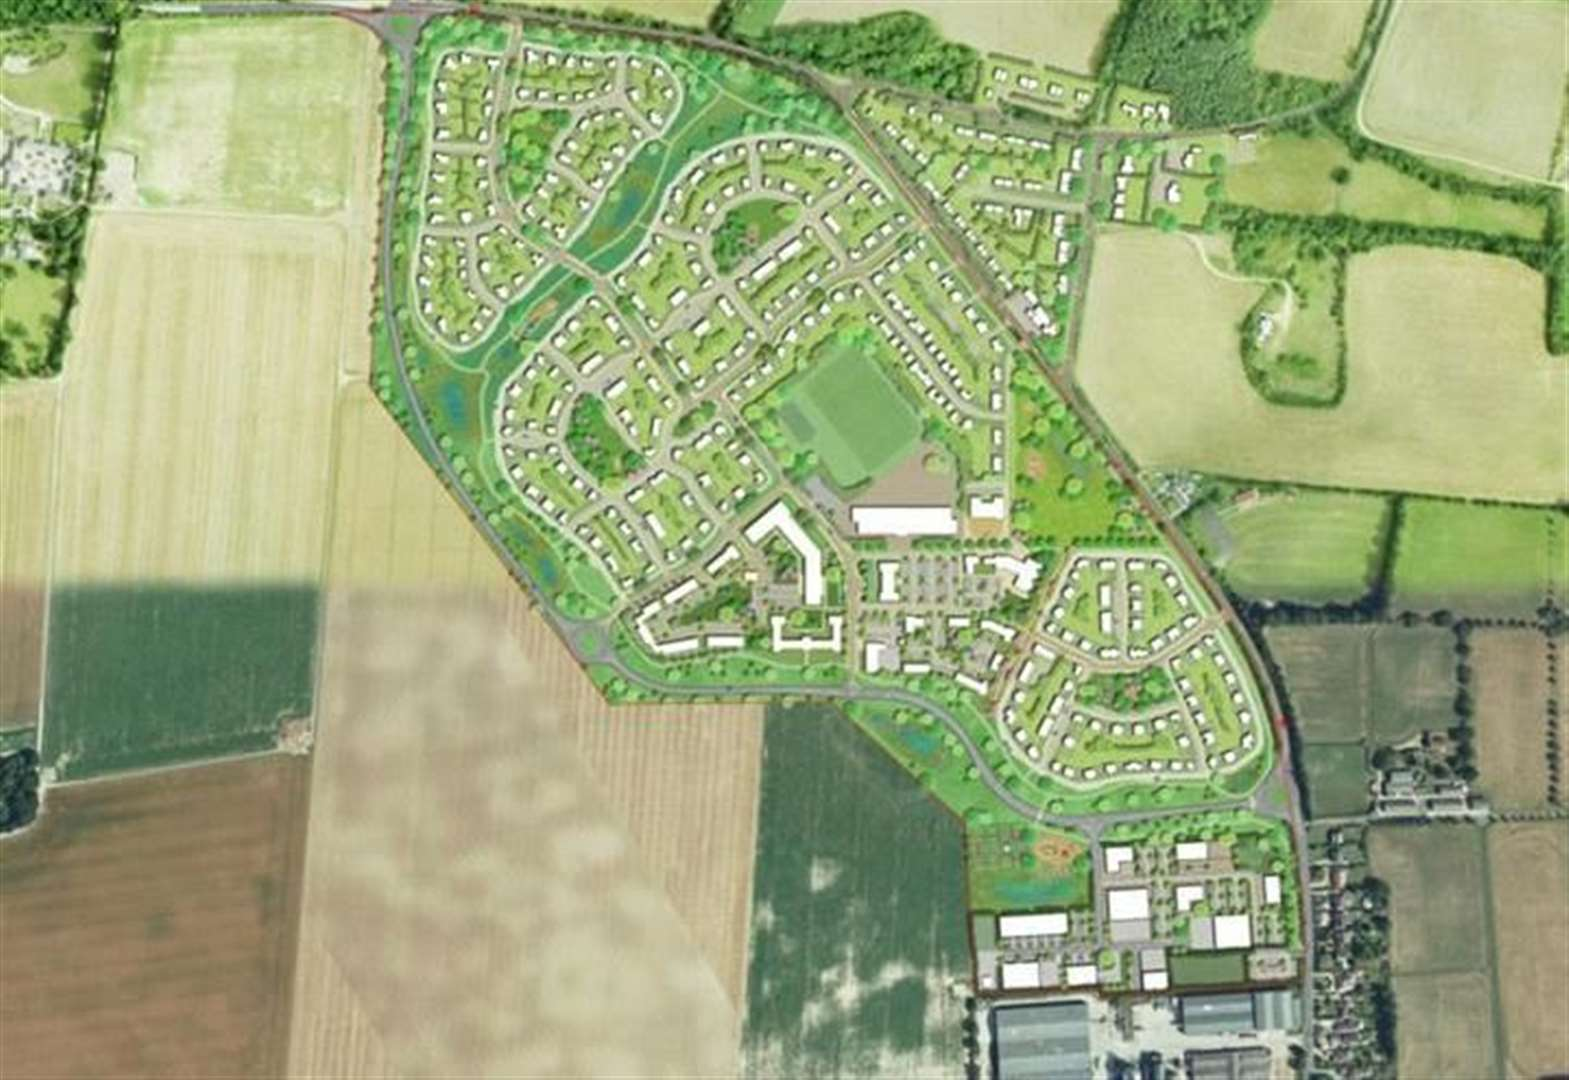 Villagers 'ready to fight' district's 500 home estate plan